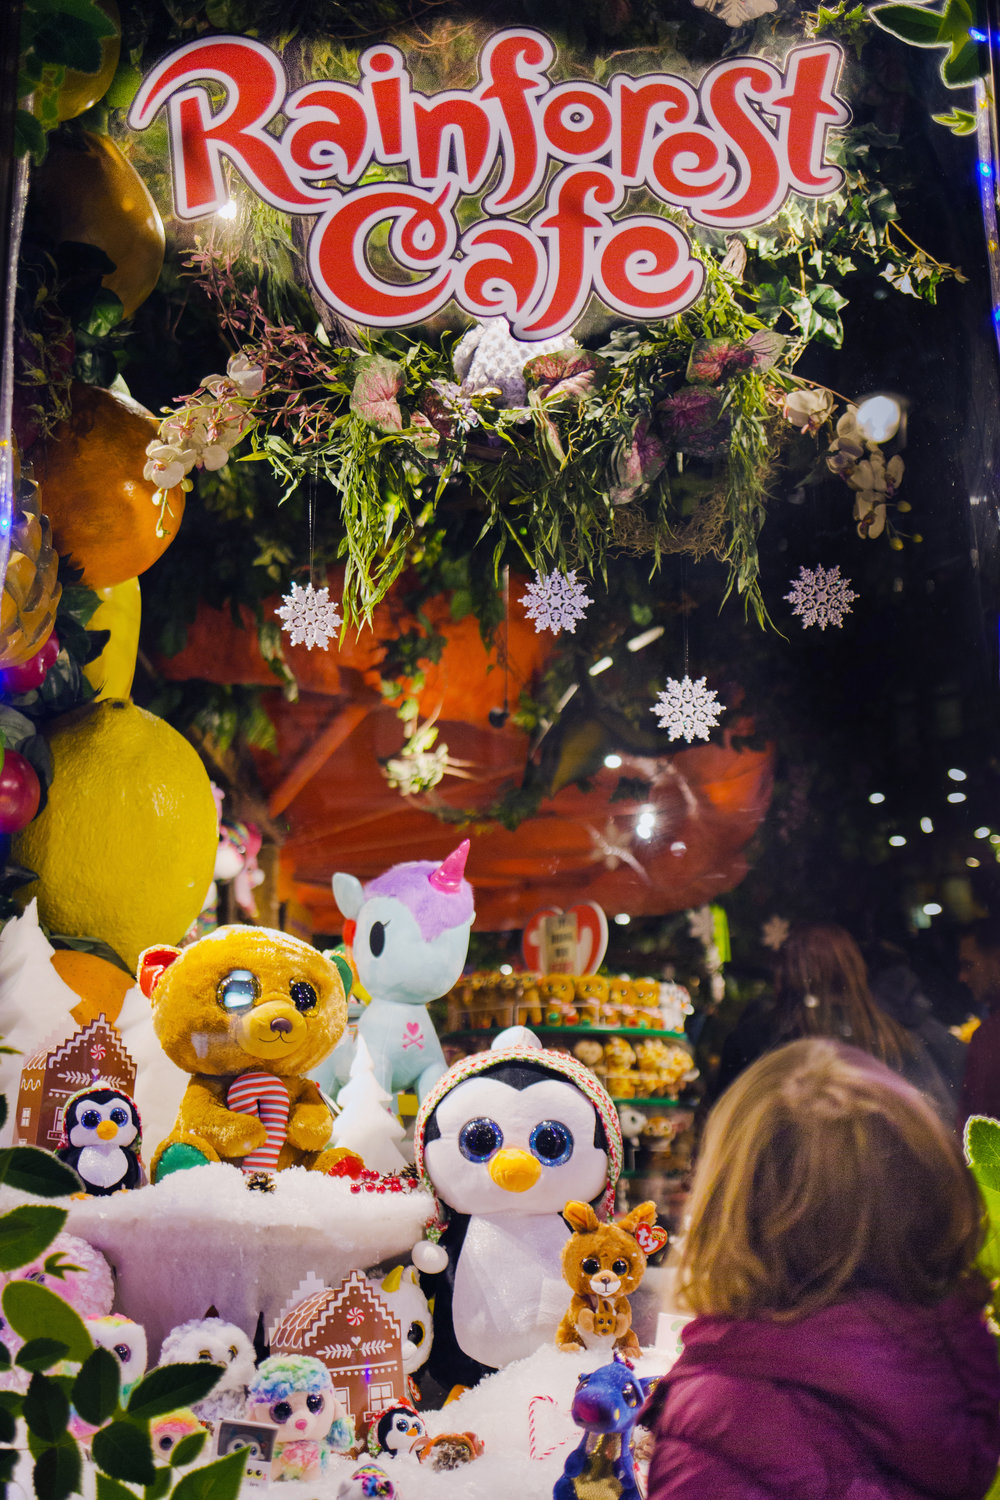 Katie-Collins-Rainforest-Cafe-16.jpg